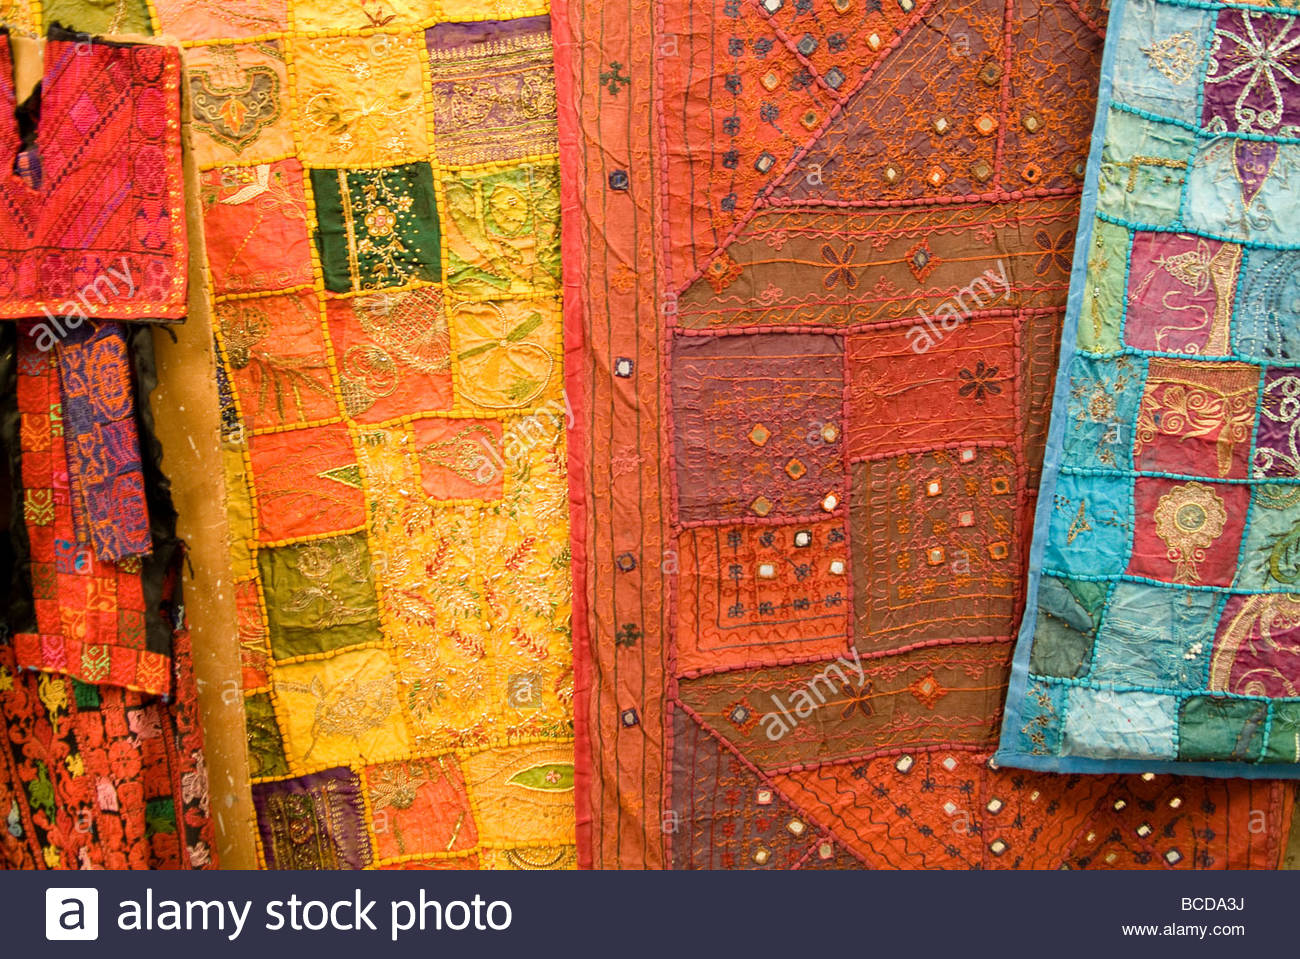 Jerusalem, Israel, Richly colored fabric for sale in Old City Market. - Stock Image